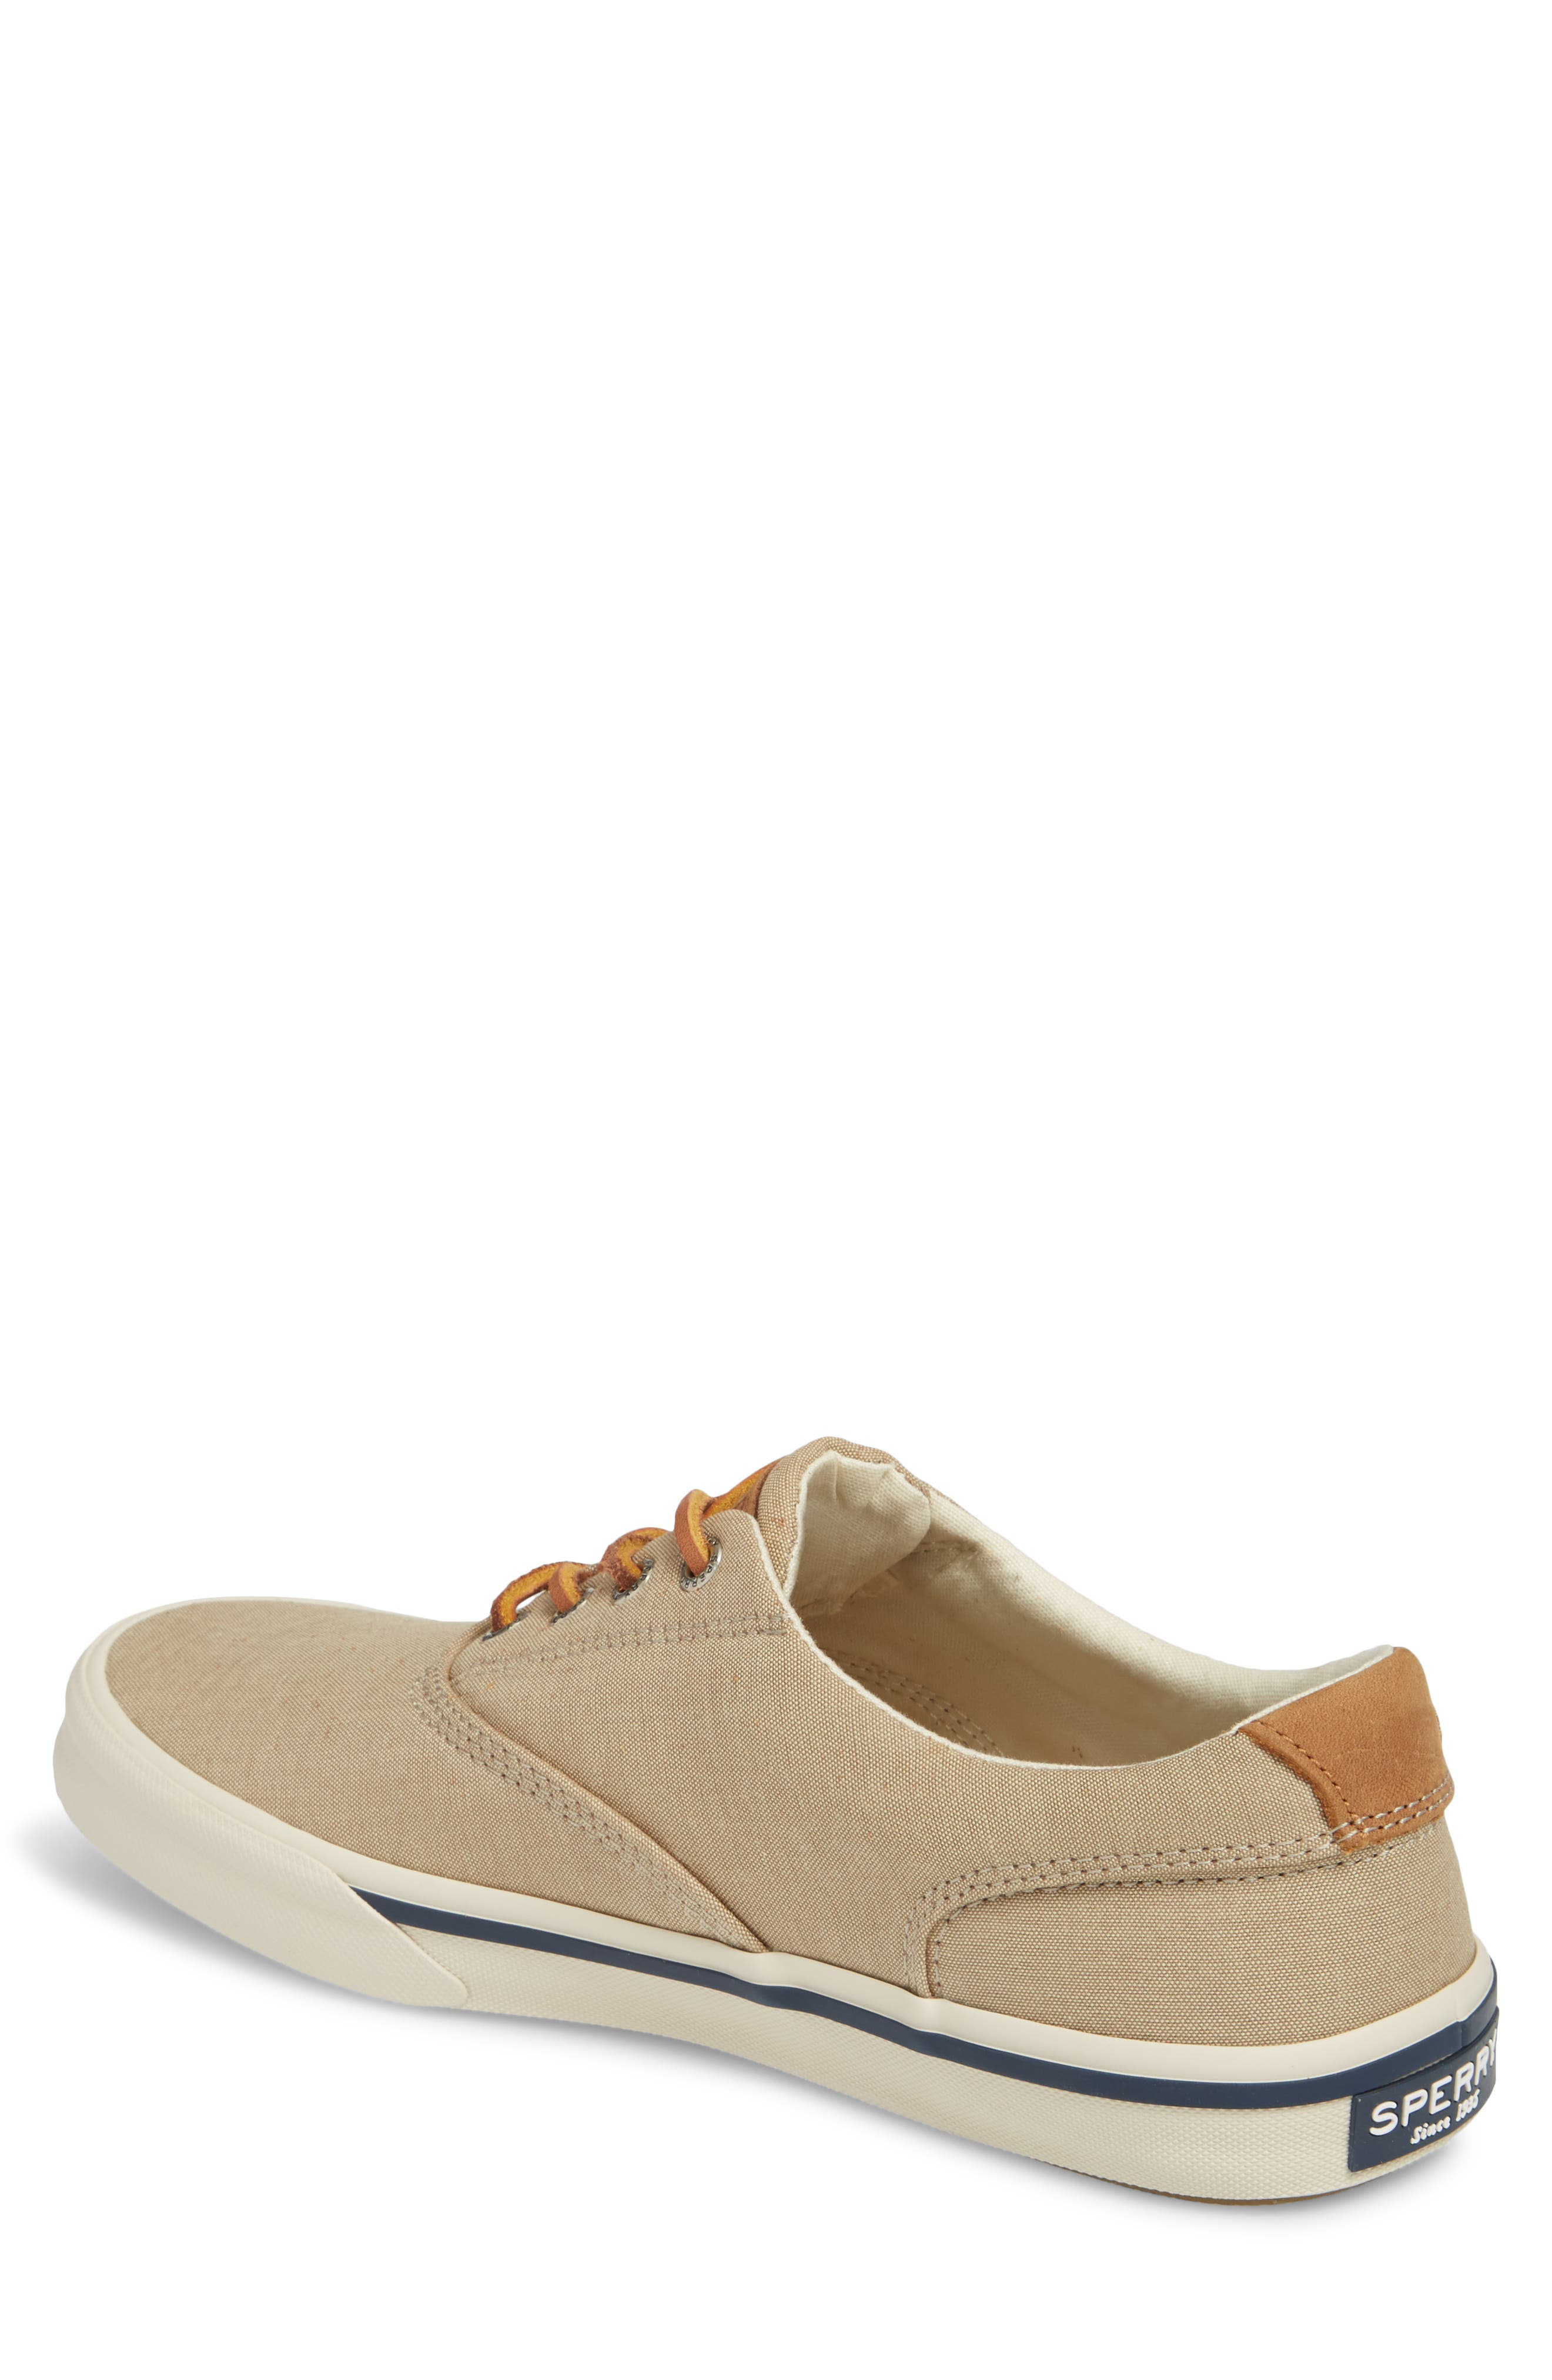 Striper 2 CVO Sneaker,                             Alternate thumbnail 2, color,                             Chino Canvas